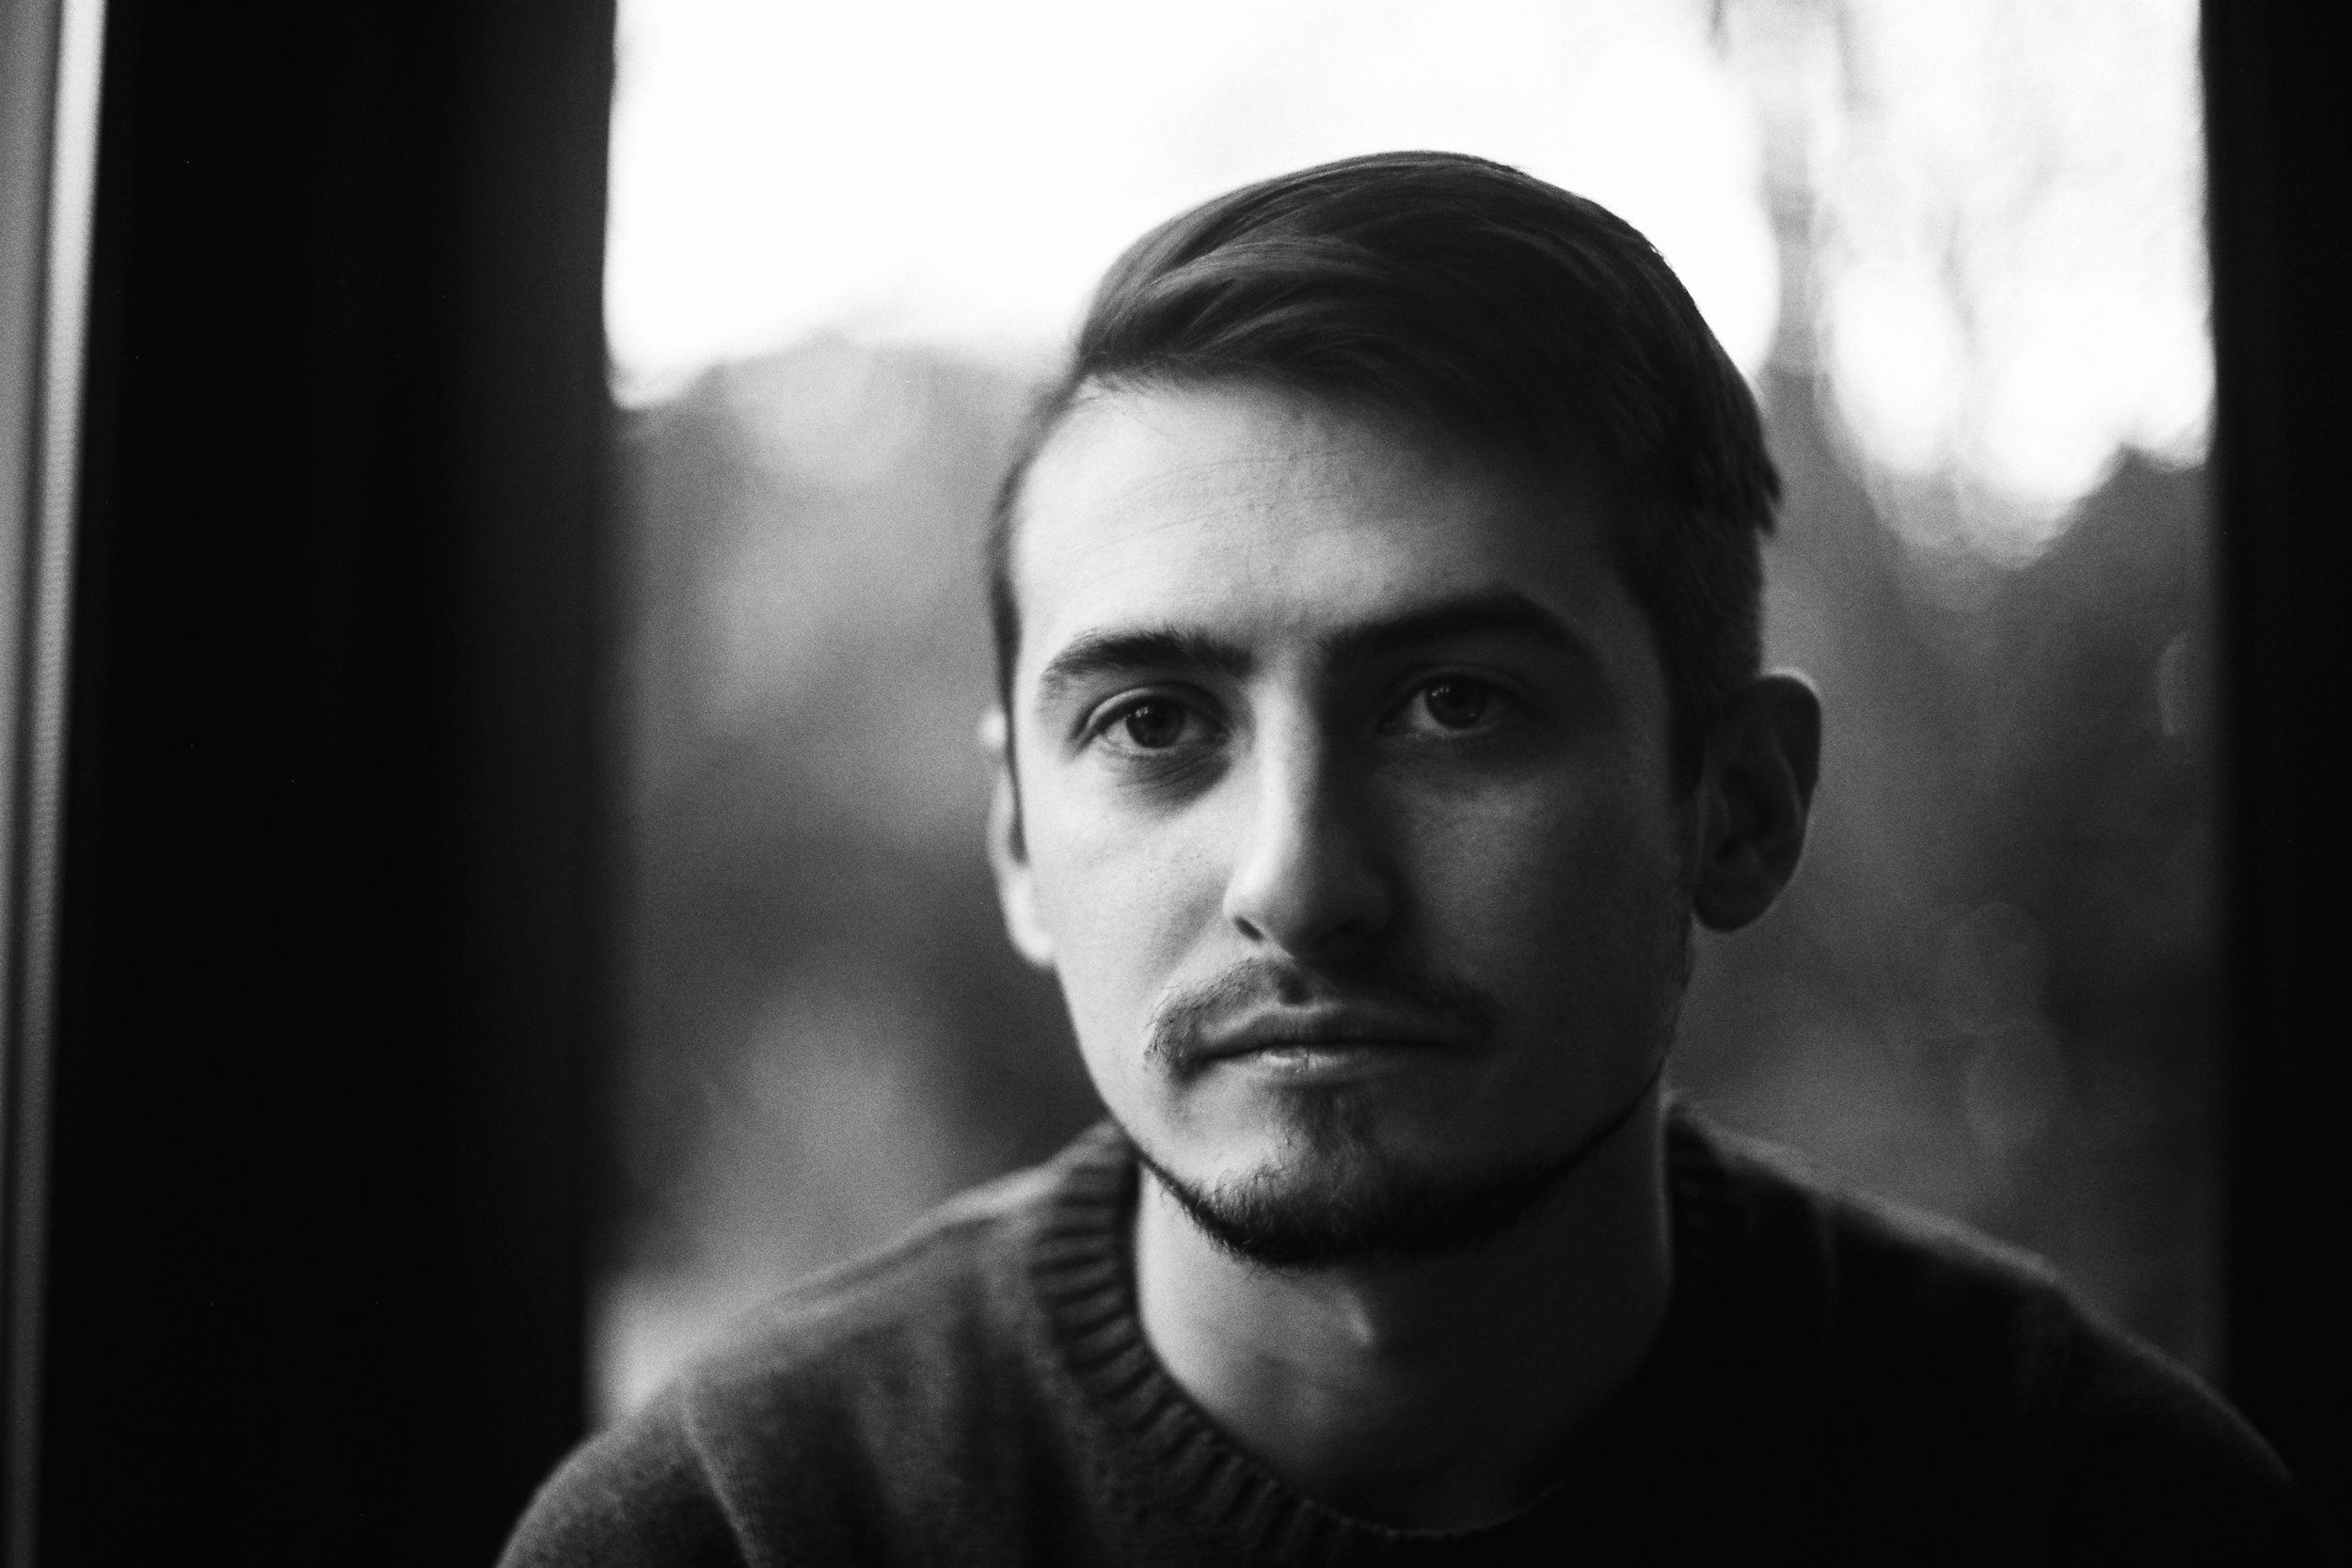 [Jérémy Prudent, Director at Buttes Chaumont]